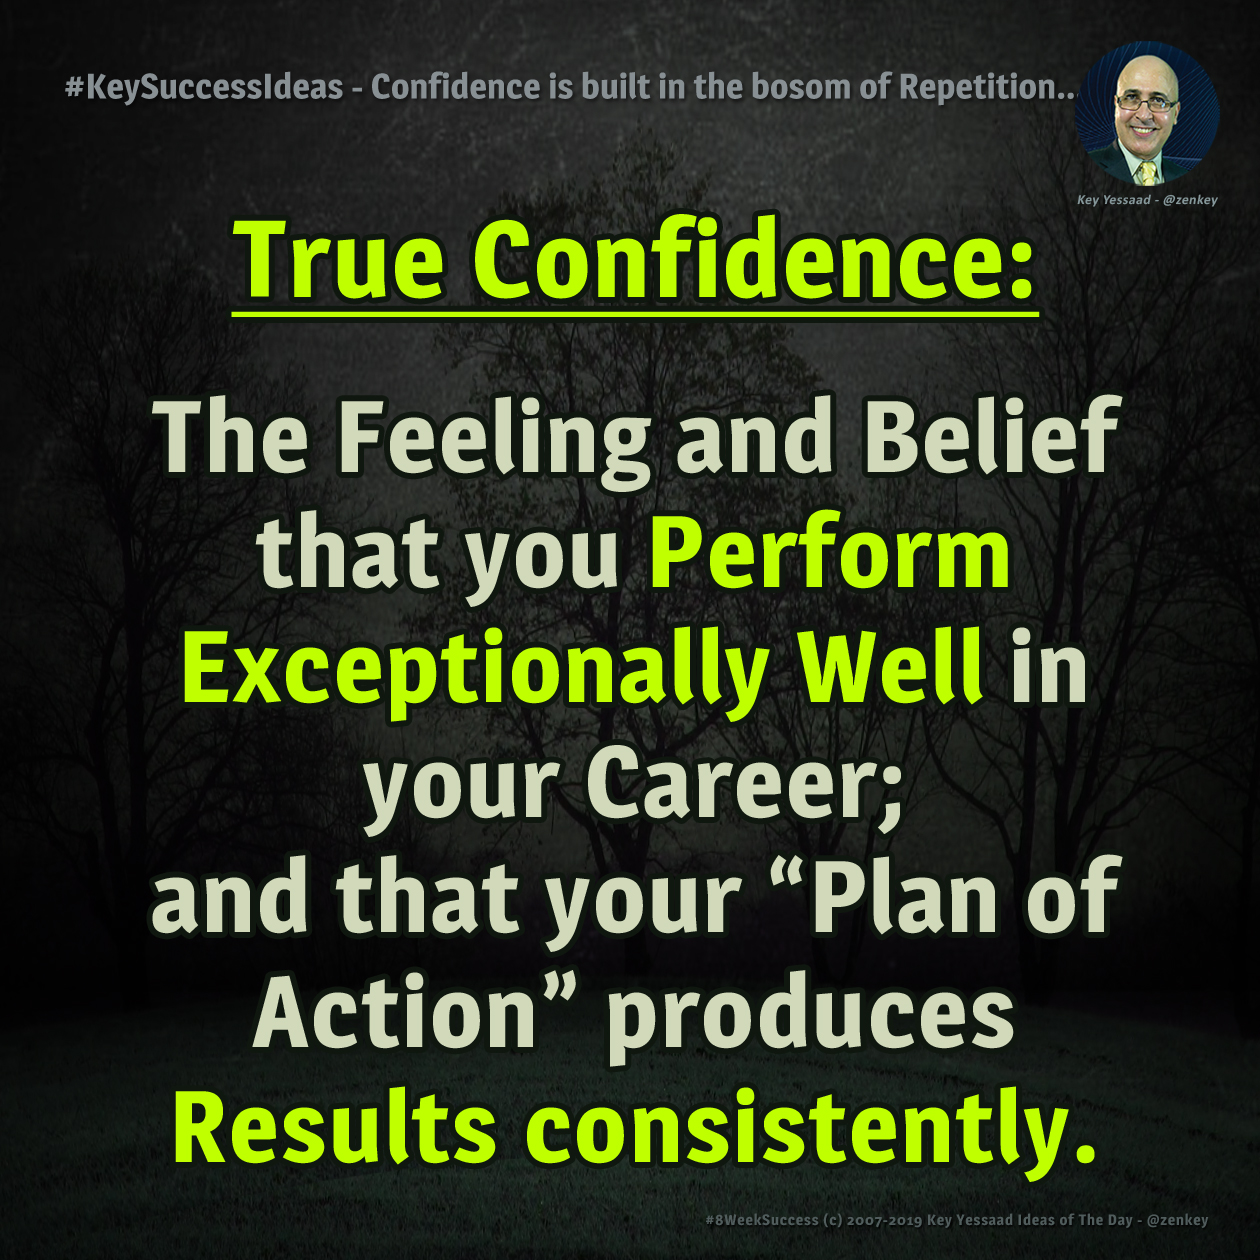 #KeySuccessIdeas - Confidence is built in the bosom of Repetition...